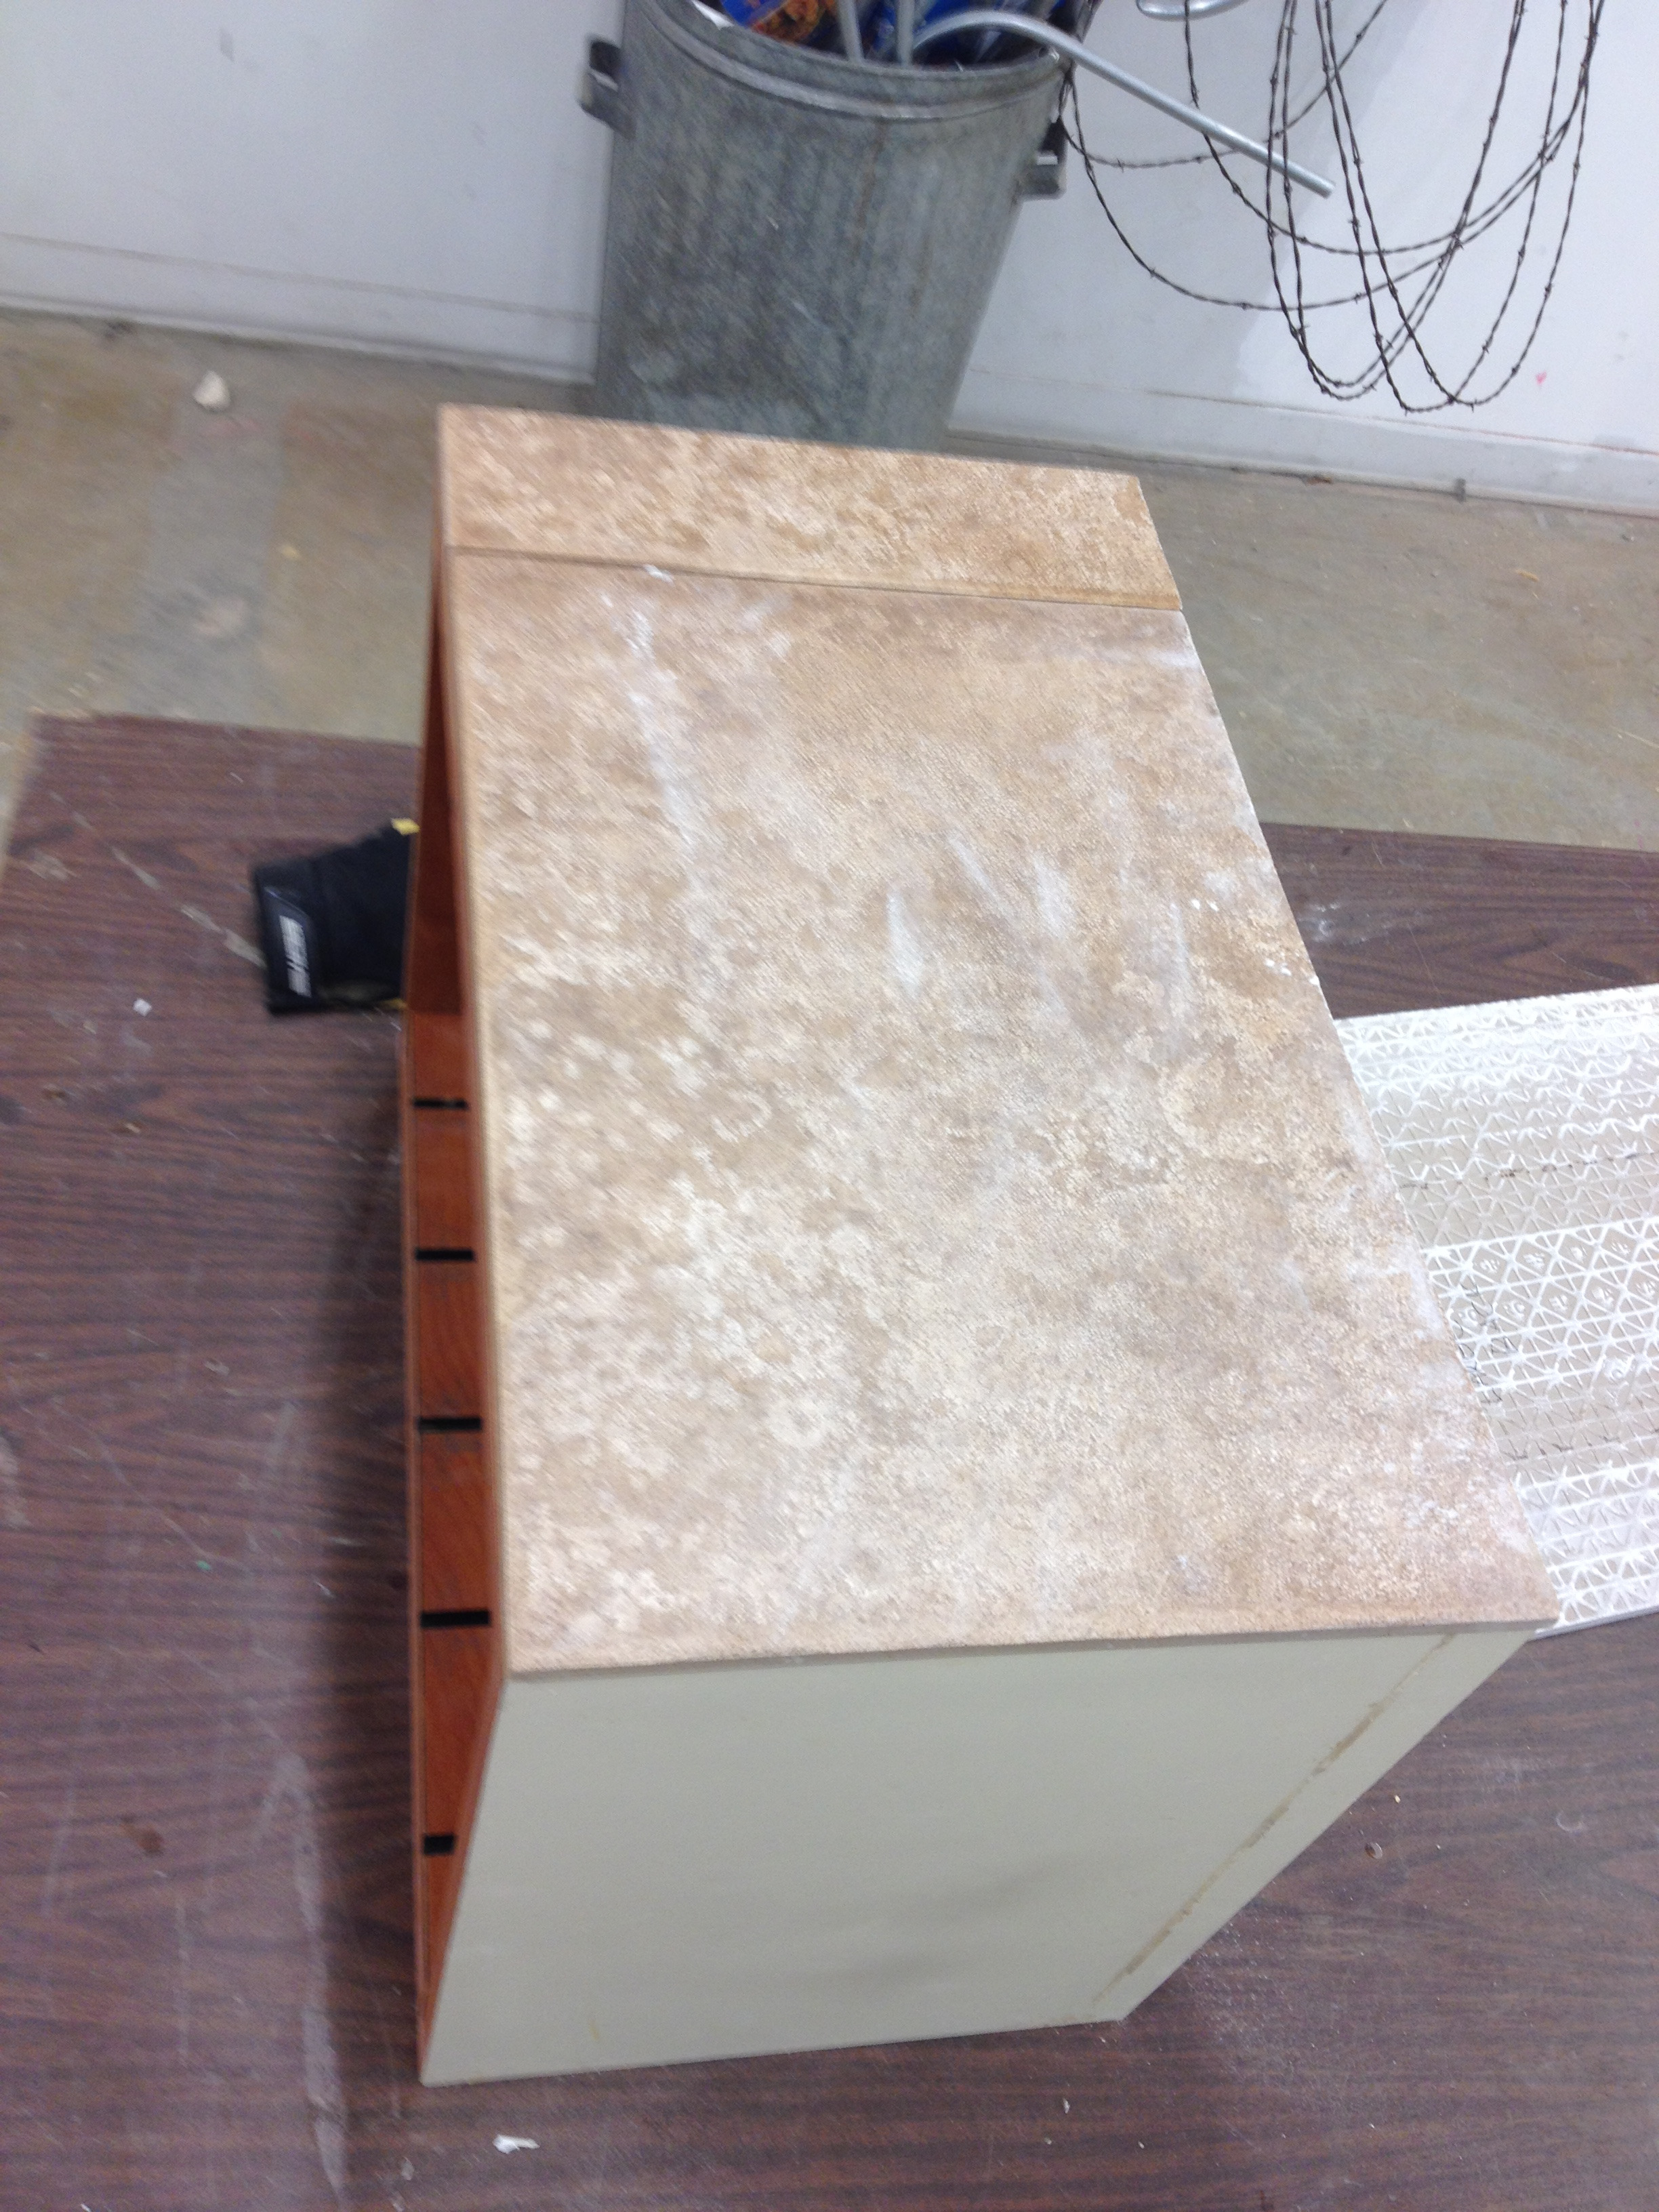 Picture of Mounting the Tiles on the Cabinet